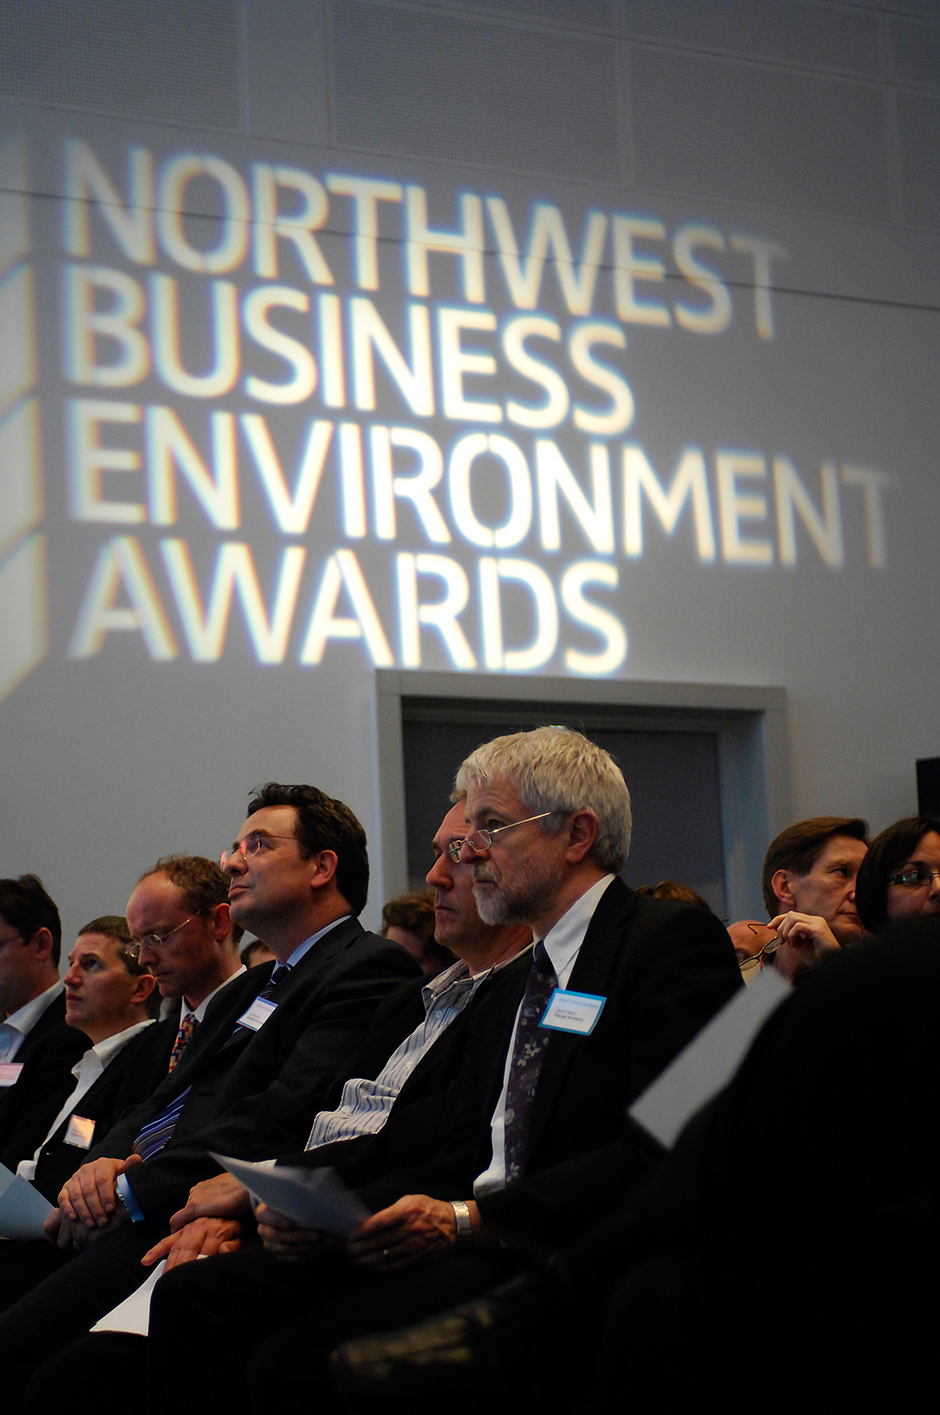 Northwest Business Environment Awards.